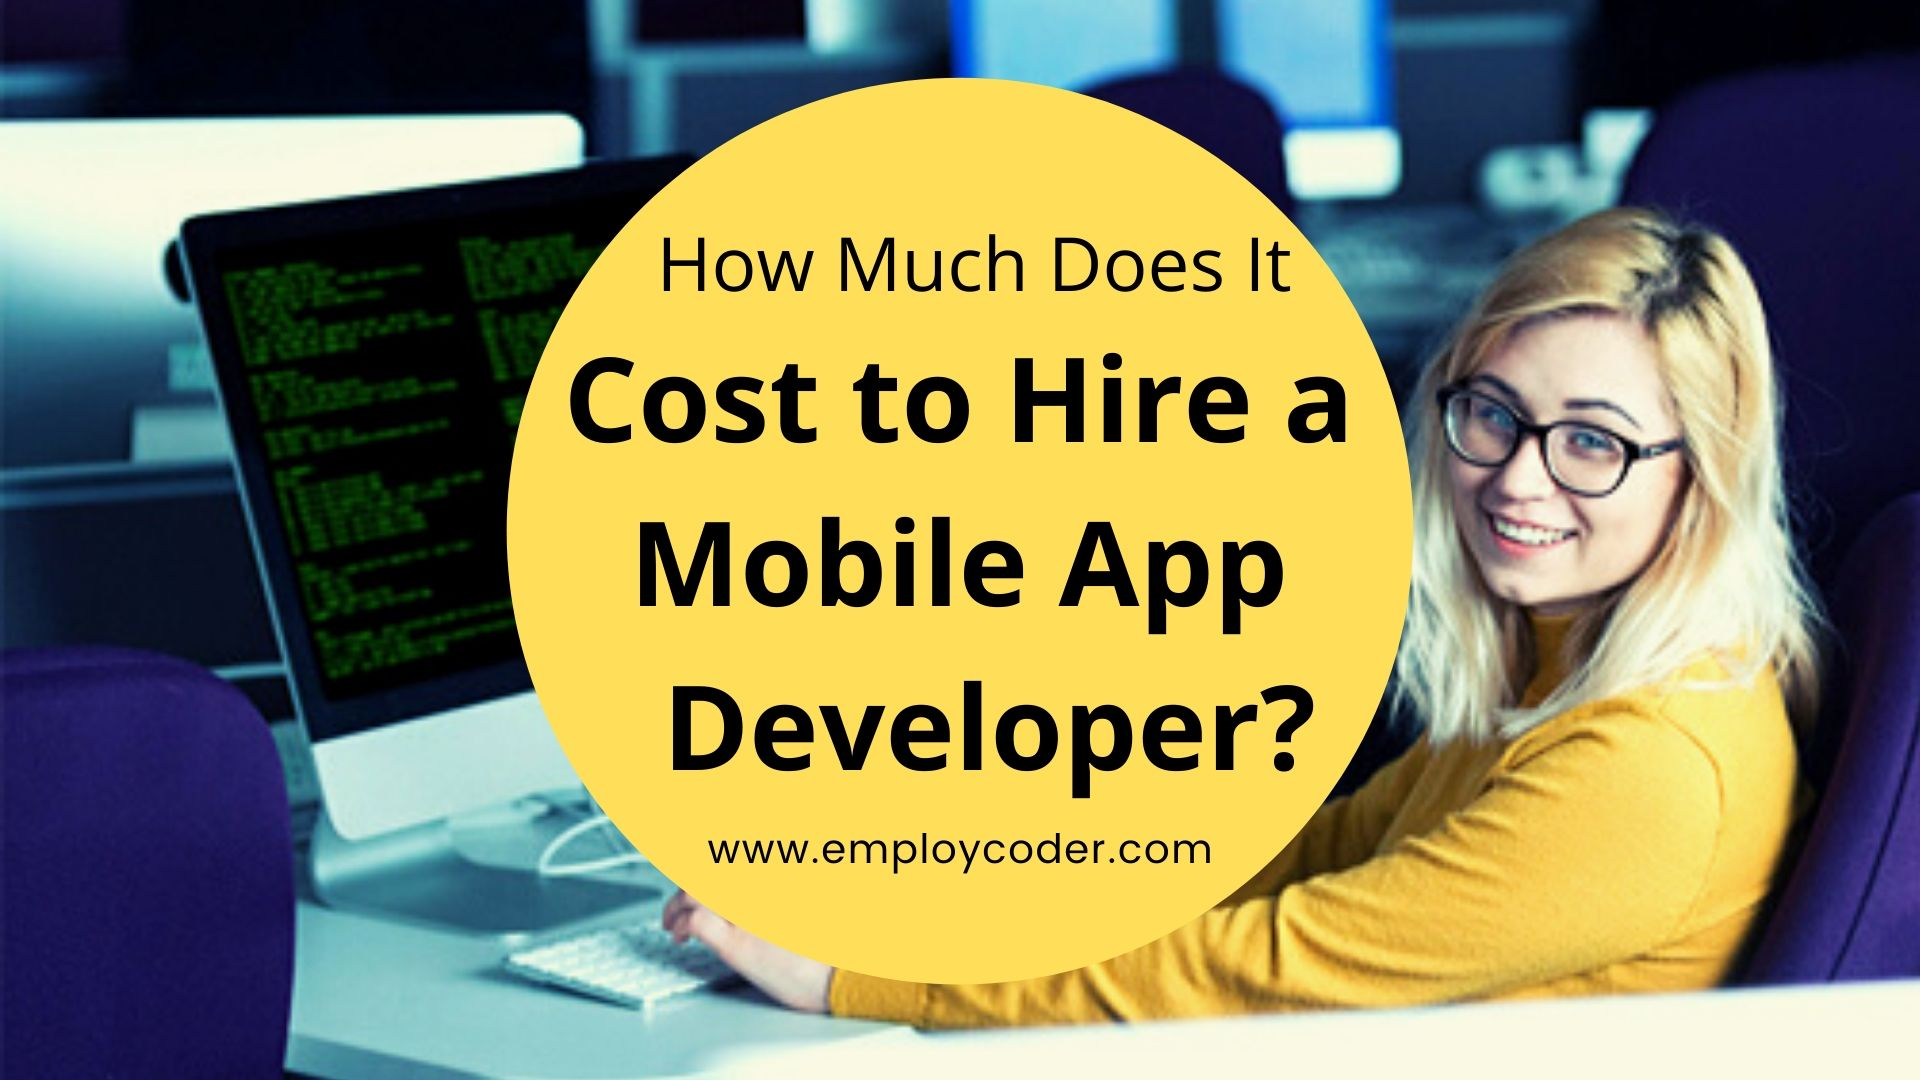 How Much Does it Cost to Hire a Mobile App Developer?